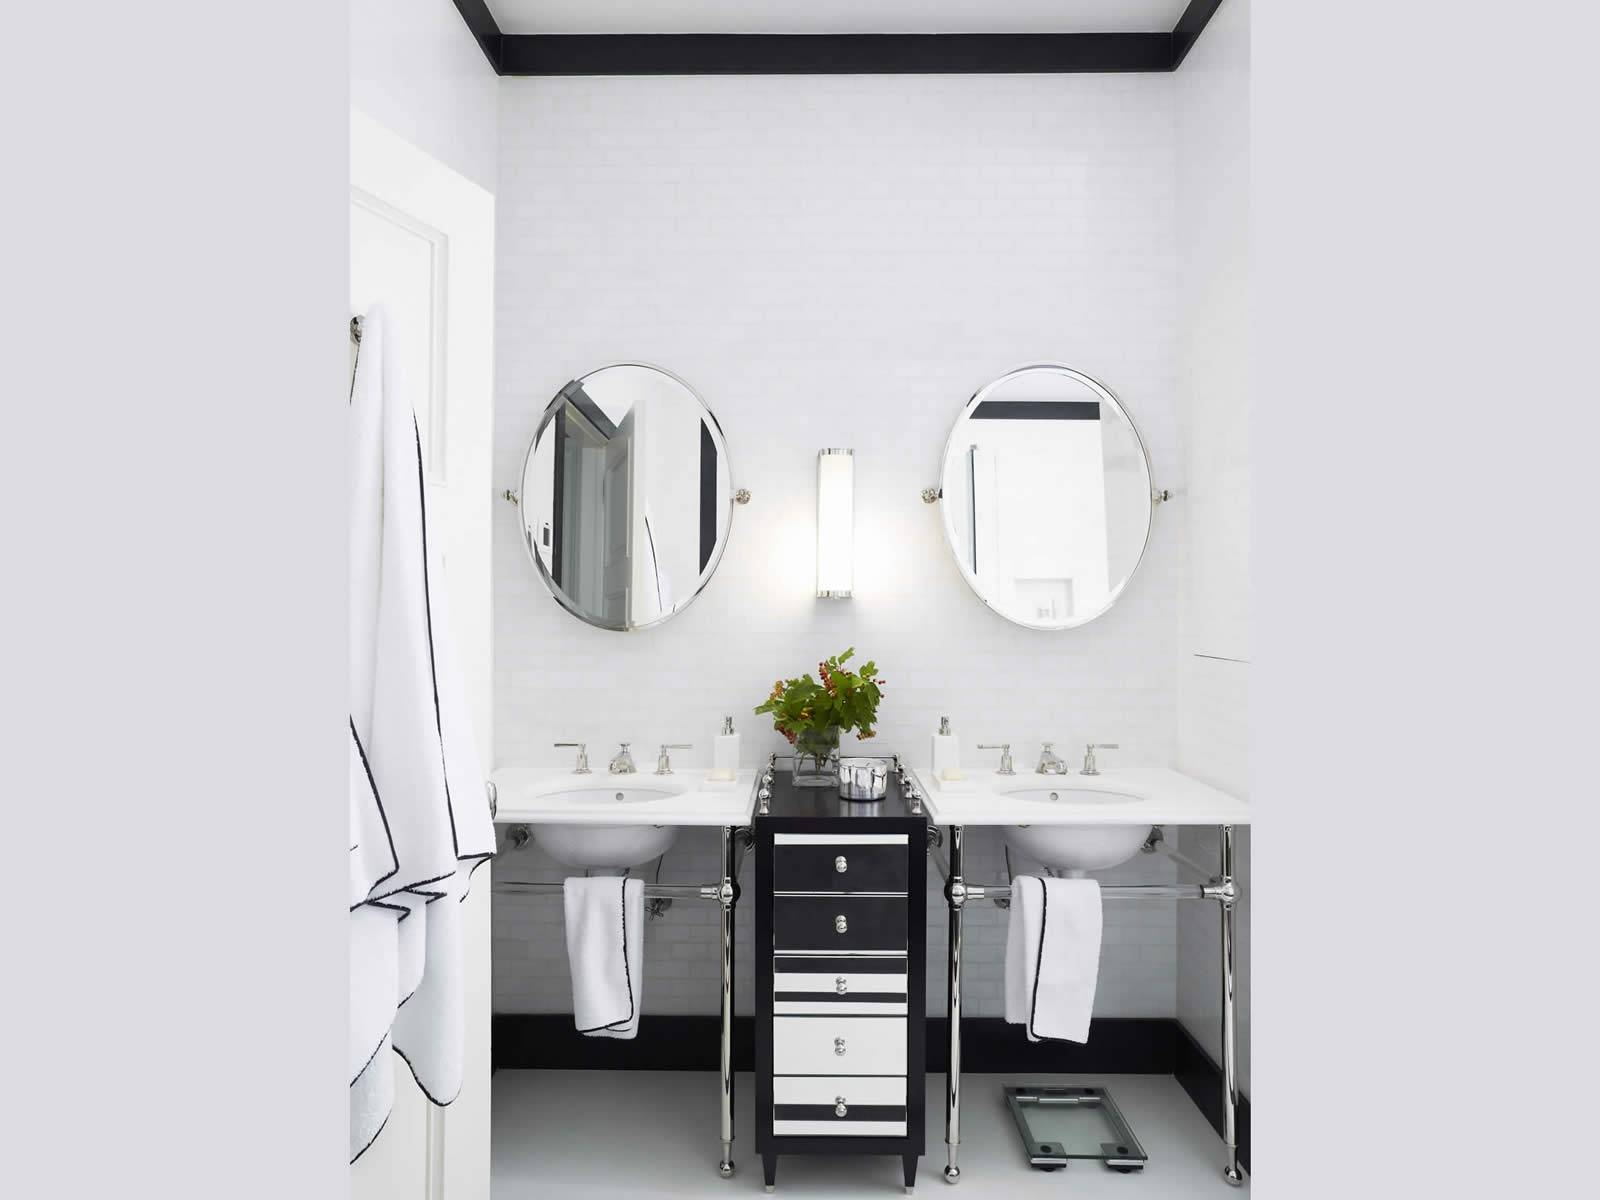 Bathroom: Bring A Touch Of Calm Elegance To Your Bathroom With intended for White Oval Bathroom Mirrors (Image 12 of 25)